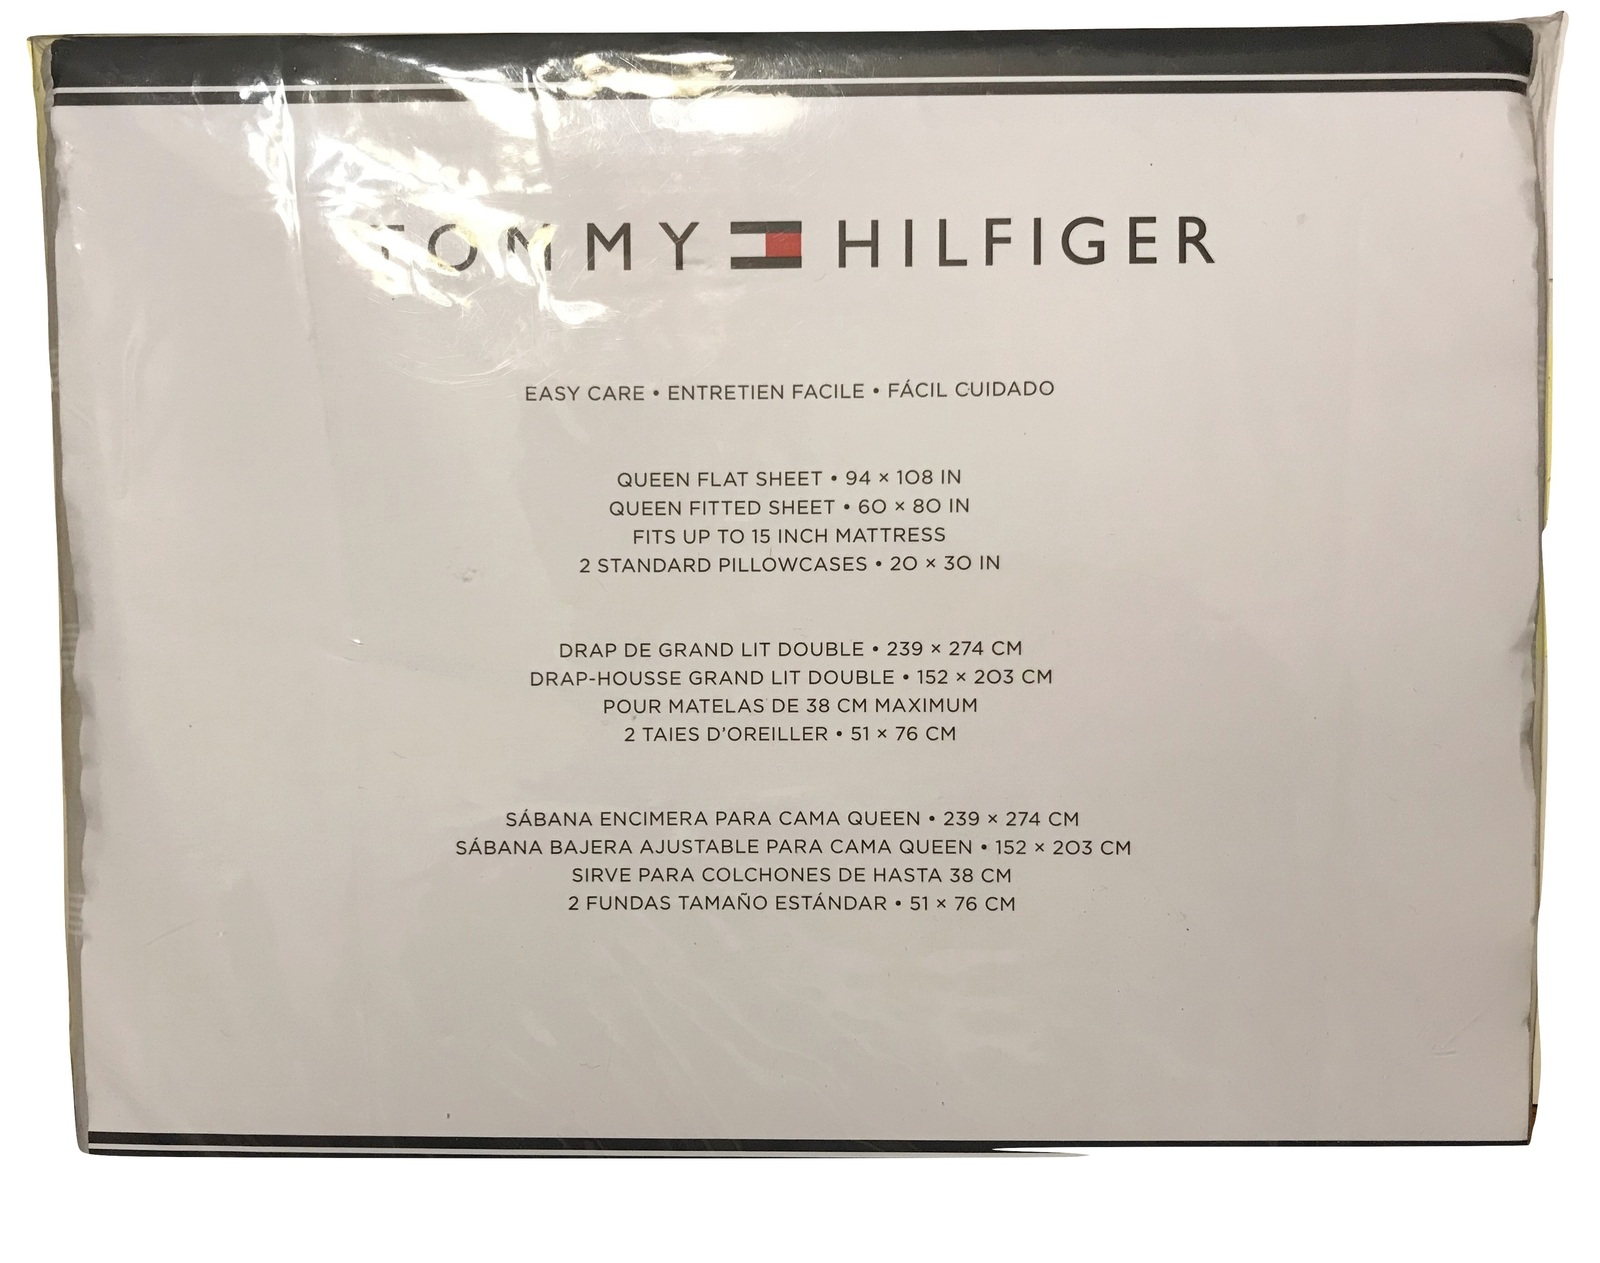 Tommy Hilfiger Gray White Striped Sheet Set, Queen, 4 Pcs